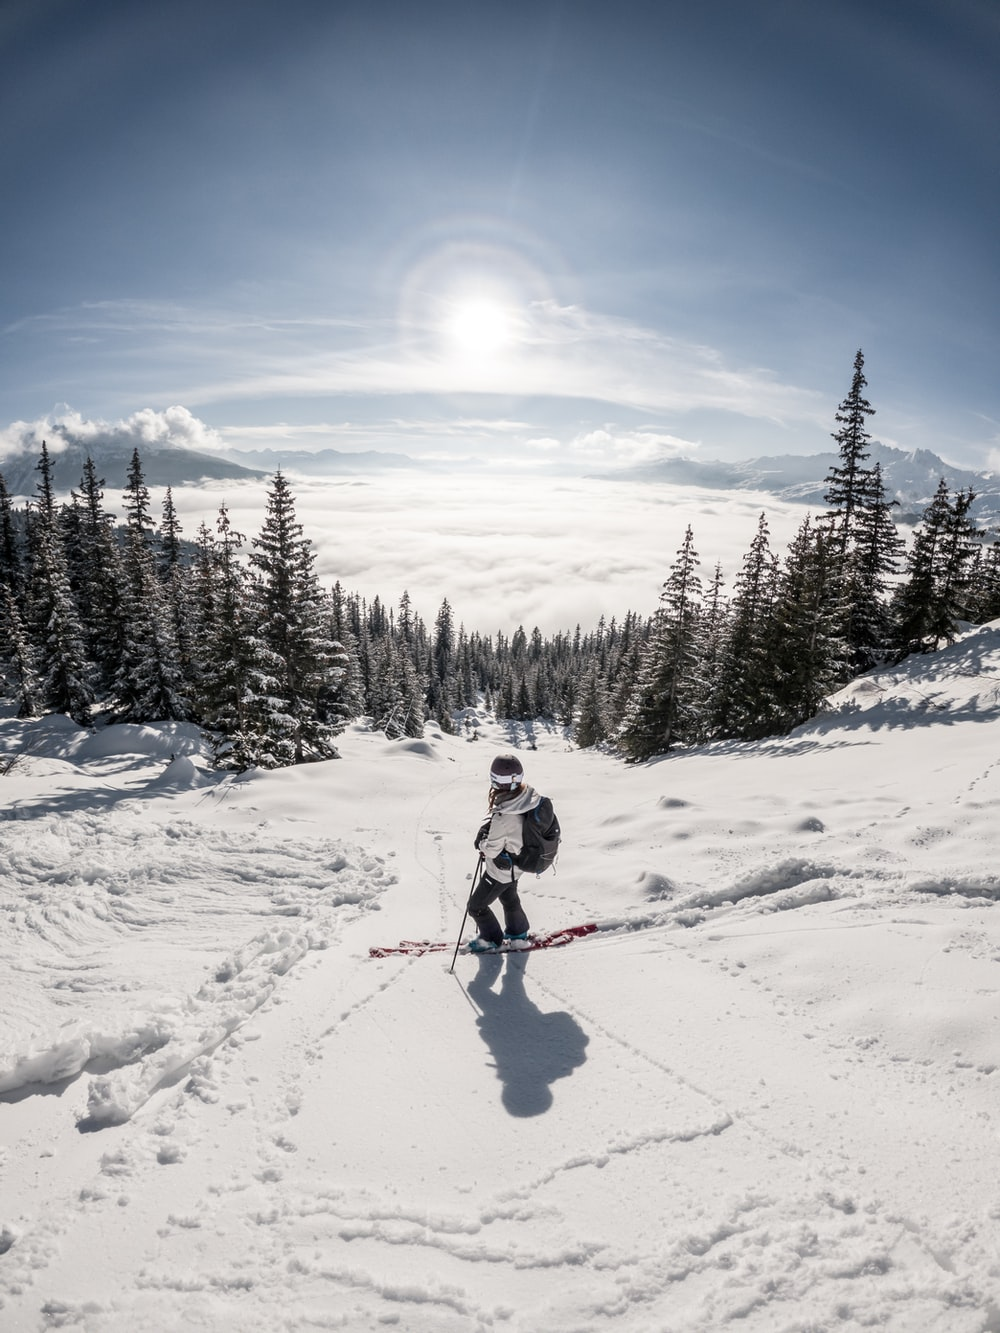 person in red jacket and blue pants riding ski blades on snow covered ground during daytime